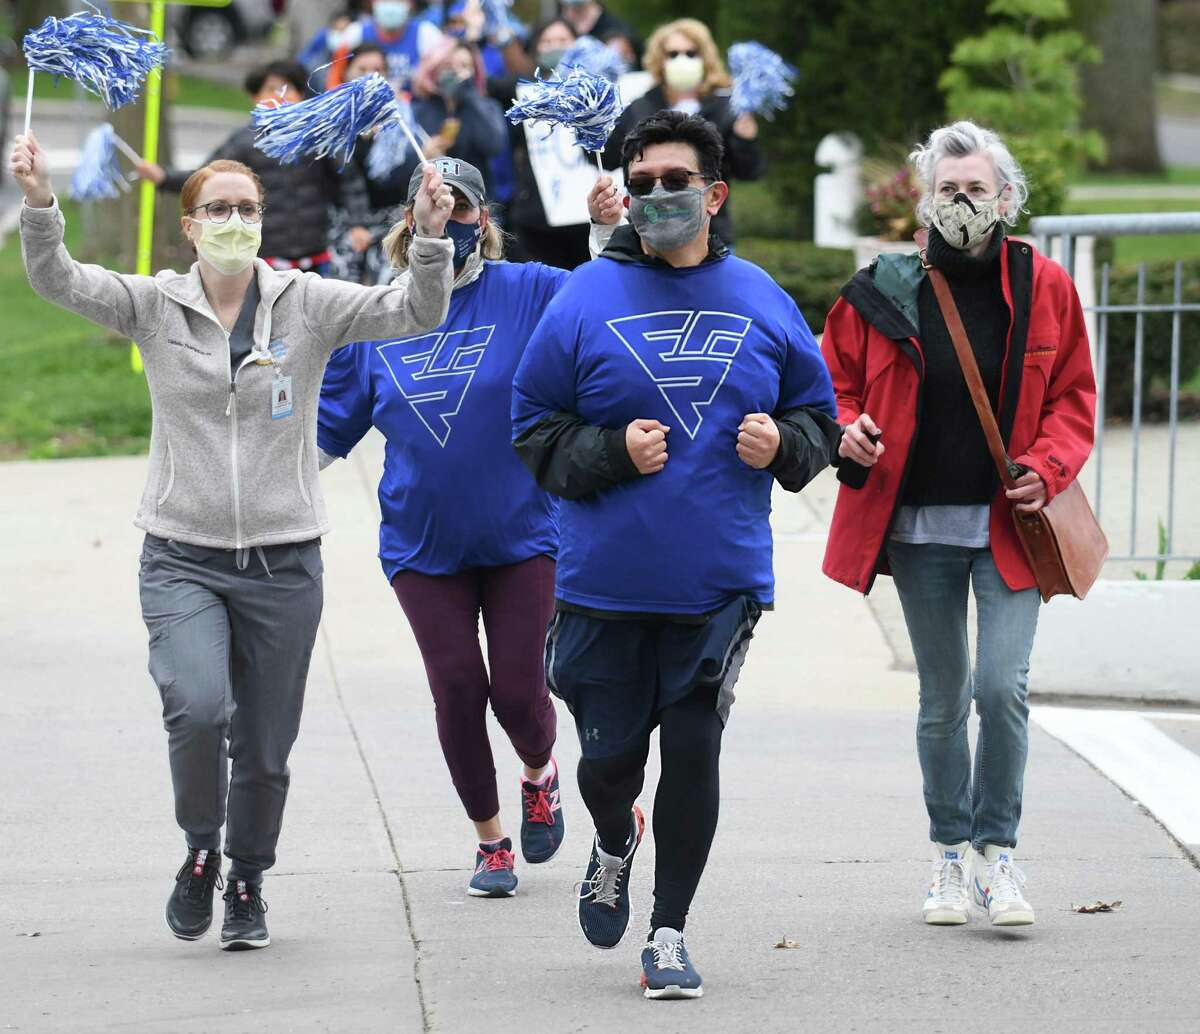 COVID-19 survivor Gabriel Cid, of Greenwich, completes a 5K alongside hospital staff outside Greenwich Hospital in Greenwich, Conn. Monday, April 12, 2021. After spending 37 days at Greenwich Hospital a year ago battling the coronavirus, Cid was discharged on May 18, 2020 becoming the 2,500th COVID patient discharged throughout the Yale New Haven Health system. Cid marked the one year anniversary of the day he was admitted by running a 5K from his home in Byram to Greenwich Hospital where he was joined by doctors, nurses, and other hospital staff to congratulate him on his recovery.